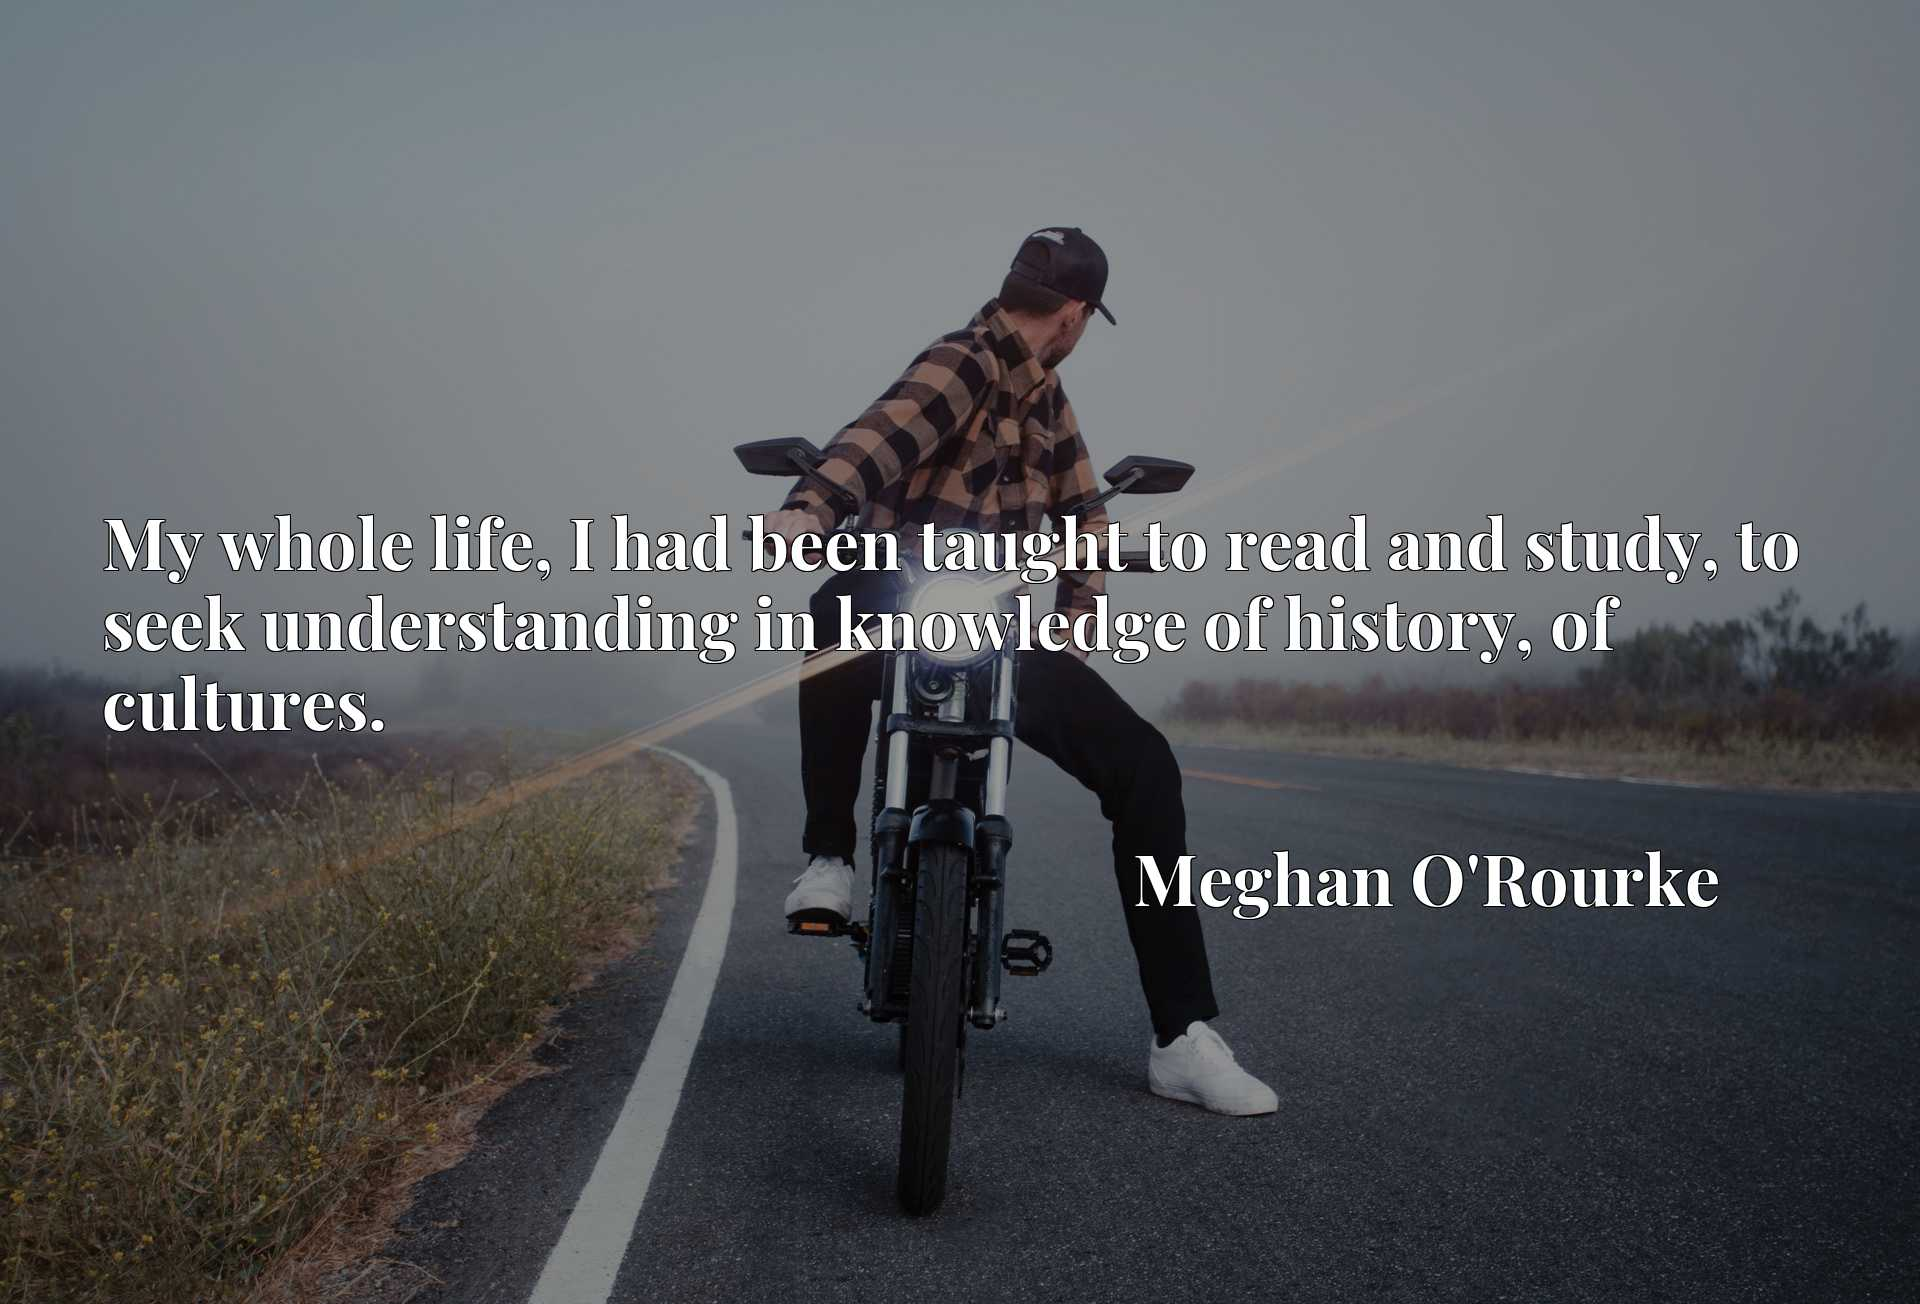 Quote Picture :My whole life, I had been taught to read and study, to seek understanding in knowledge of history, of cultures.